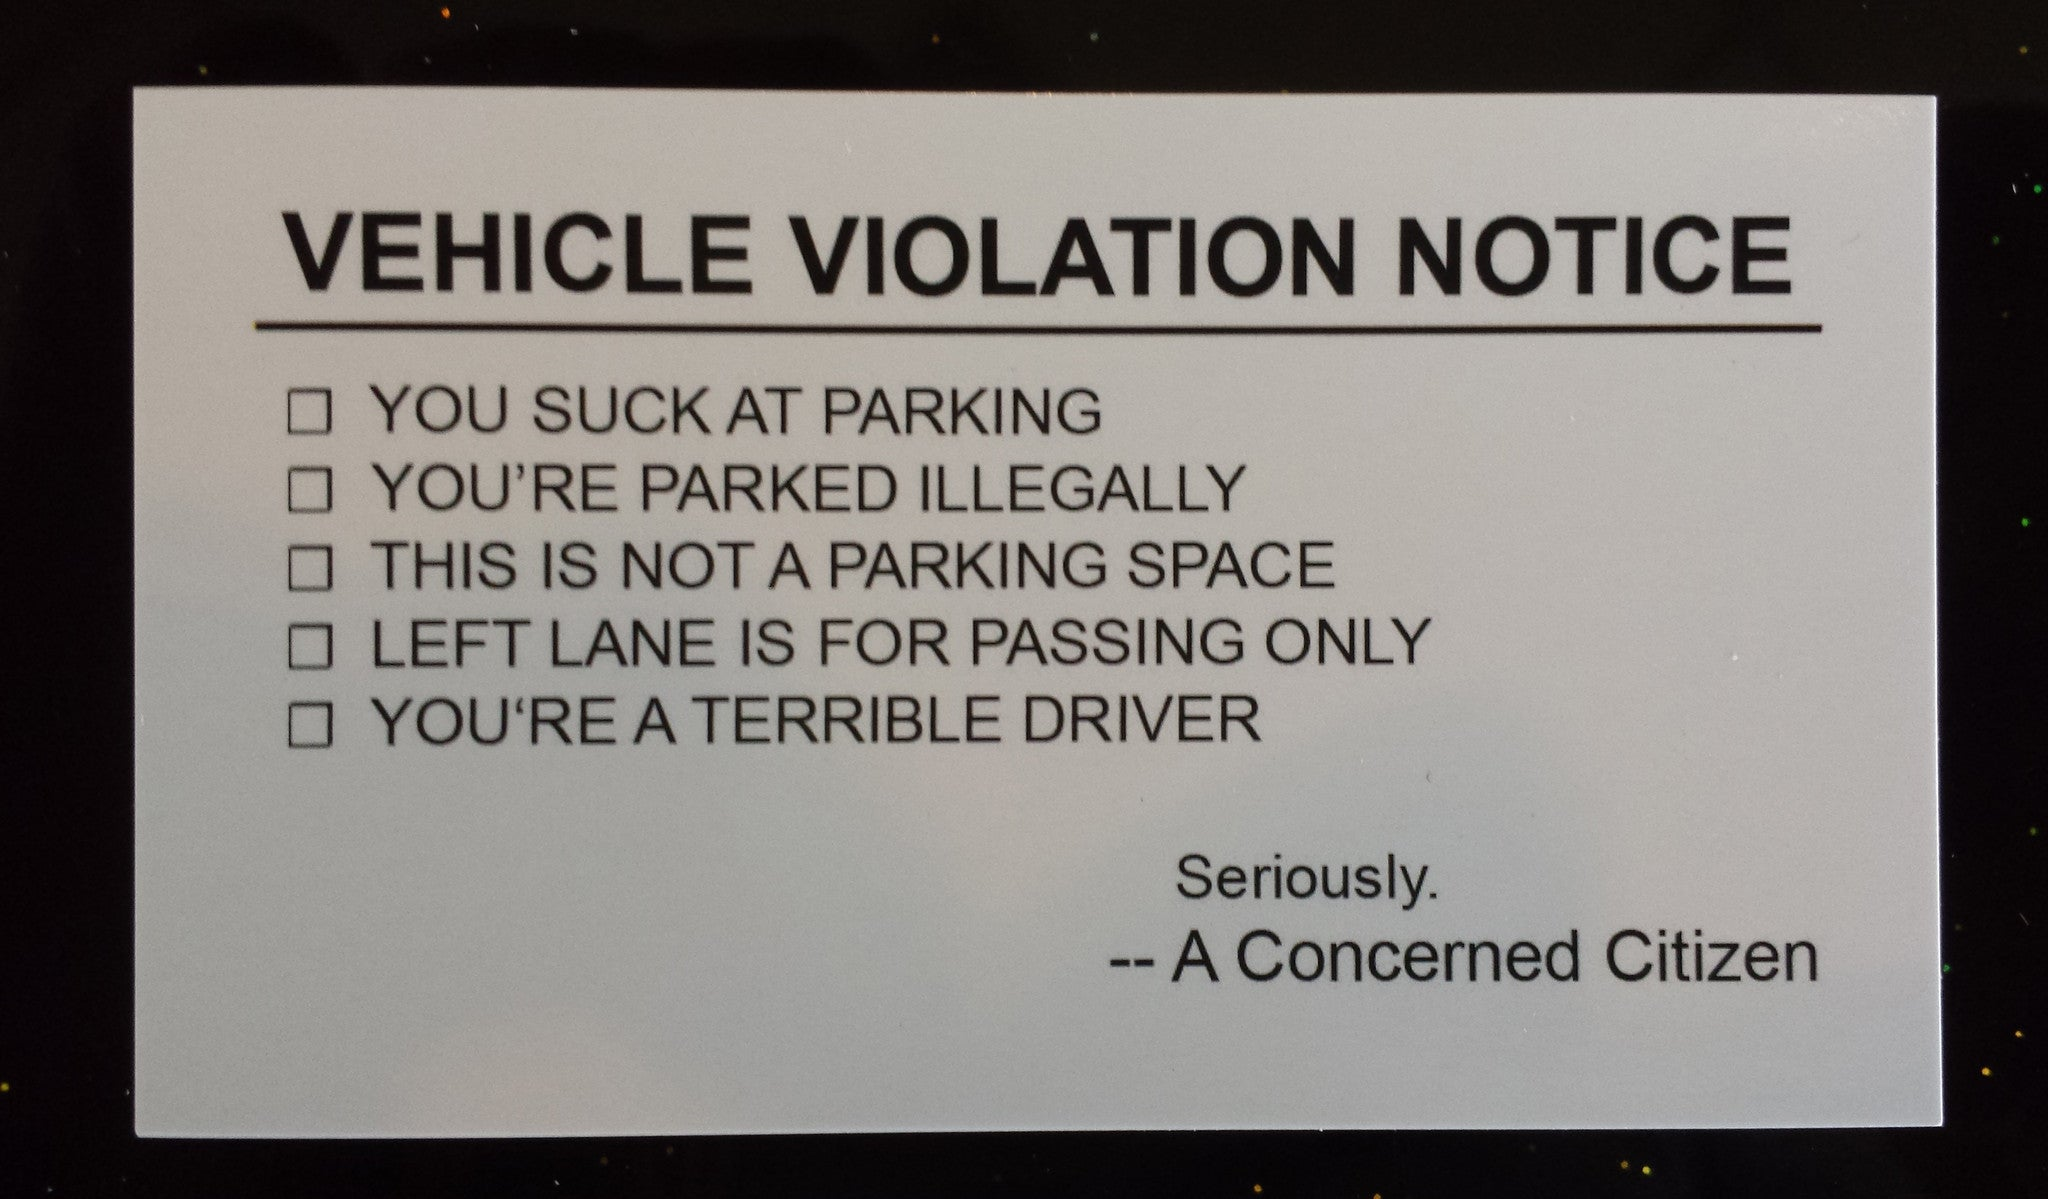 vehicle_violation_business_card?v=1429548470